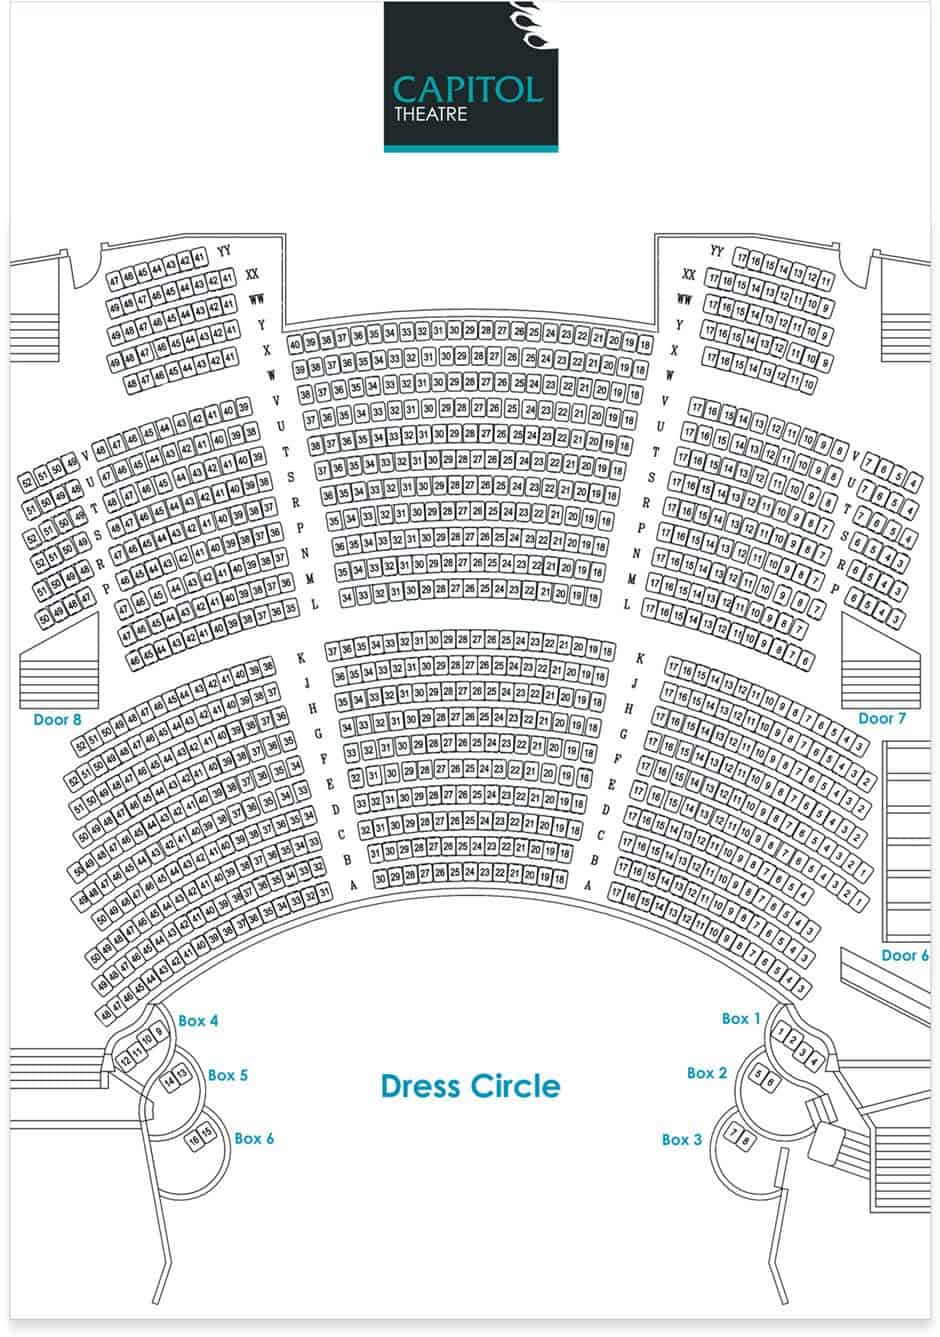 Dress circle seating